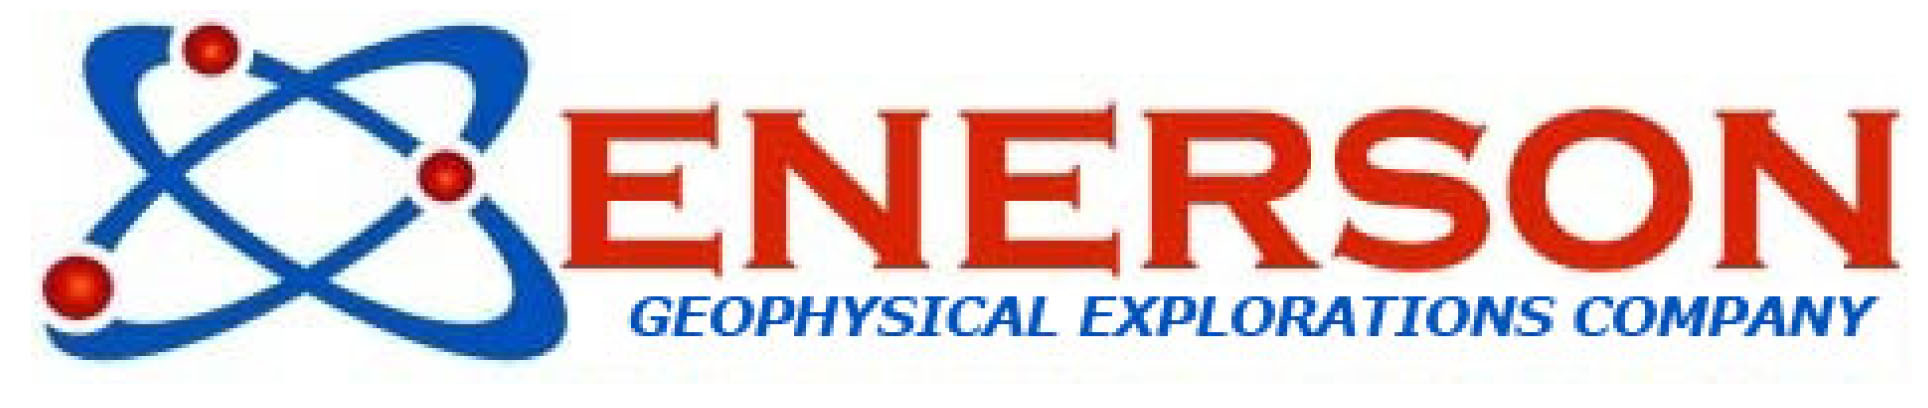 Enerson Engineering & Geophysical Explorations